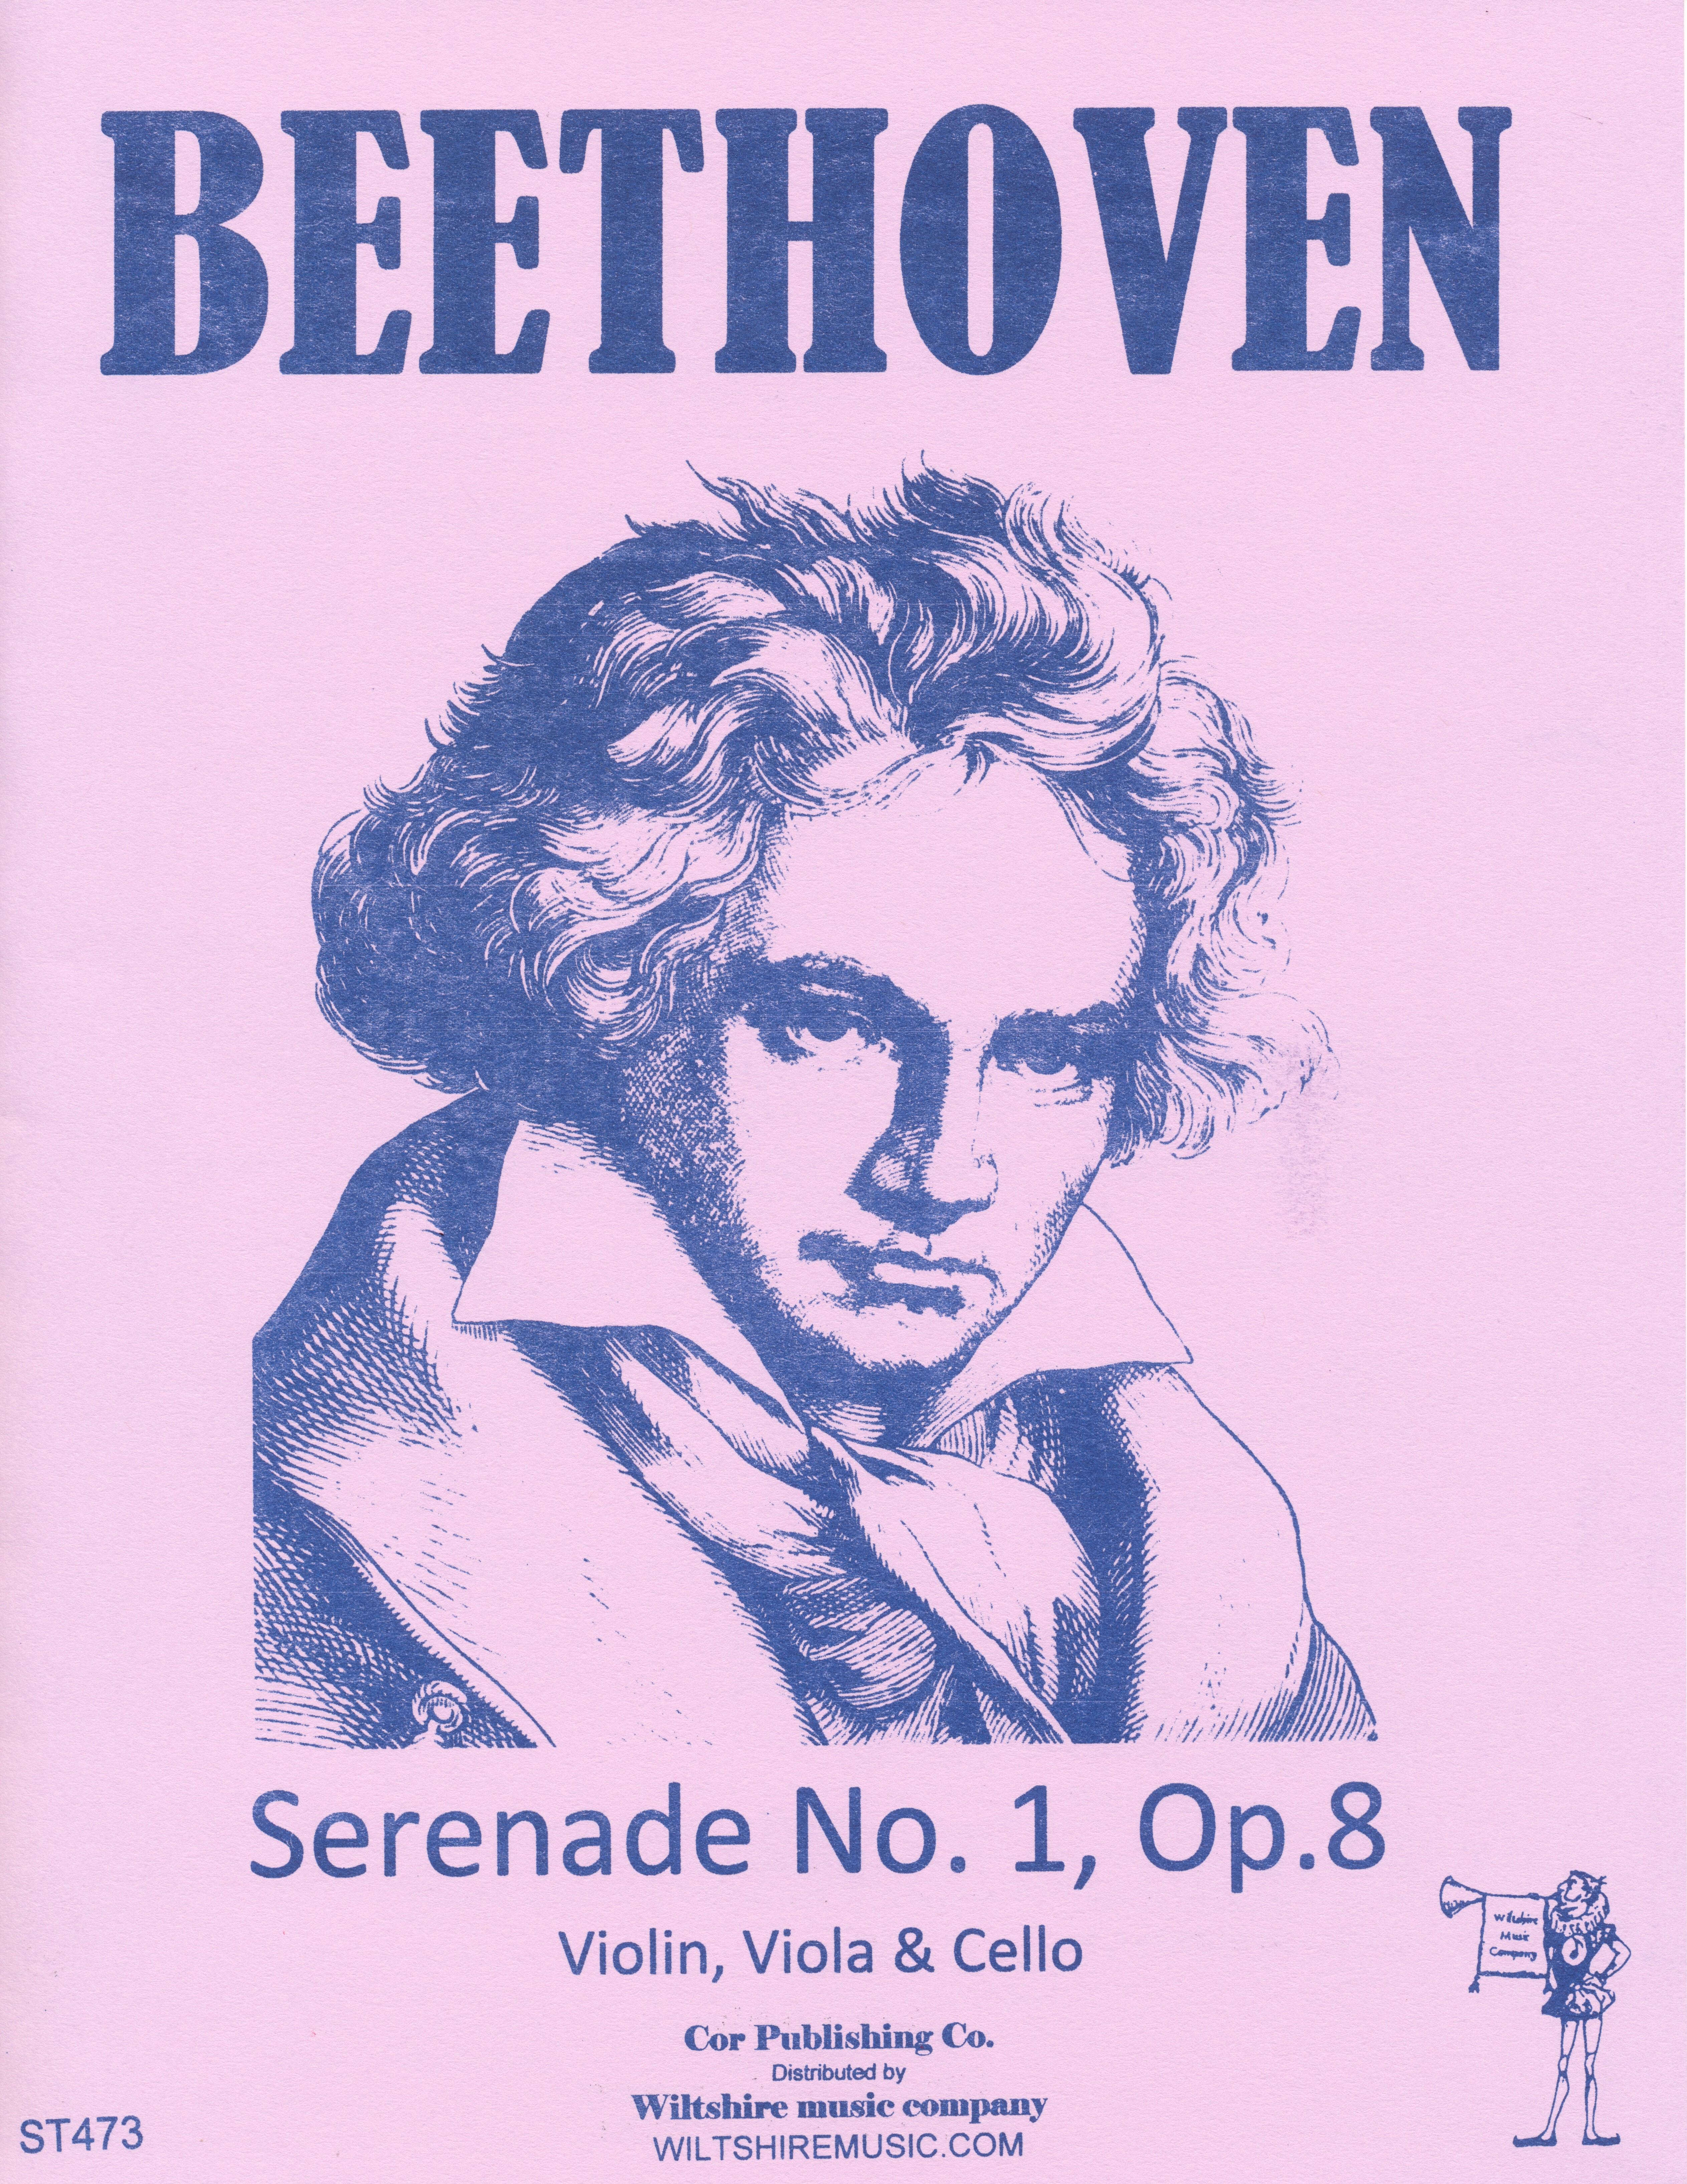 Serenade No.1,Op.8, Beethoven, violin, viola & cello